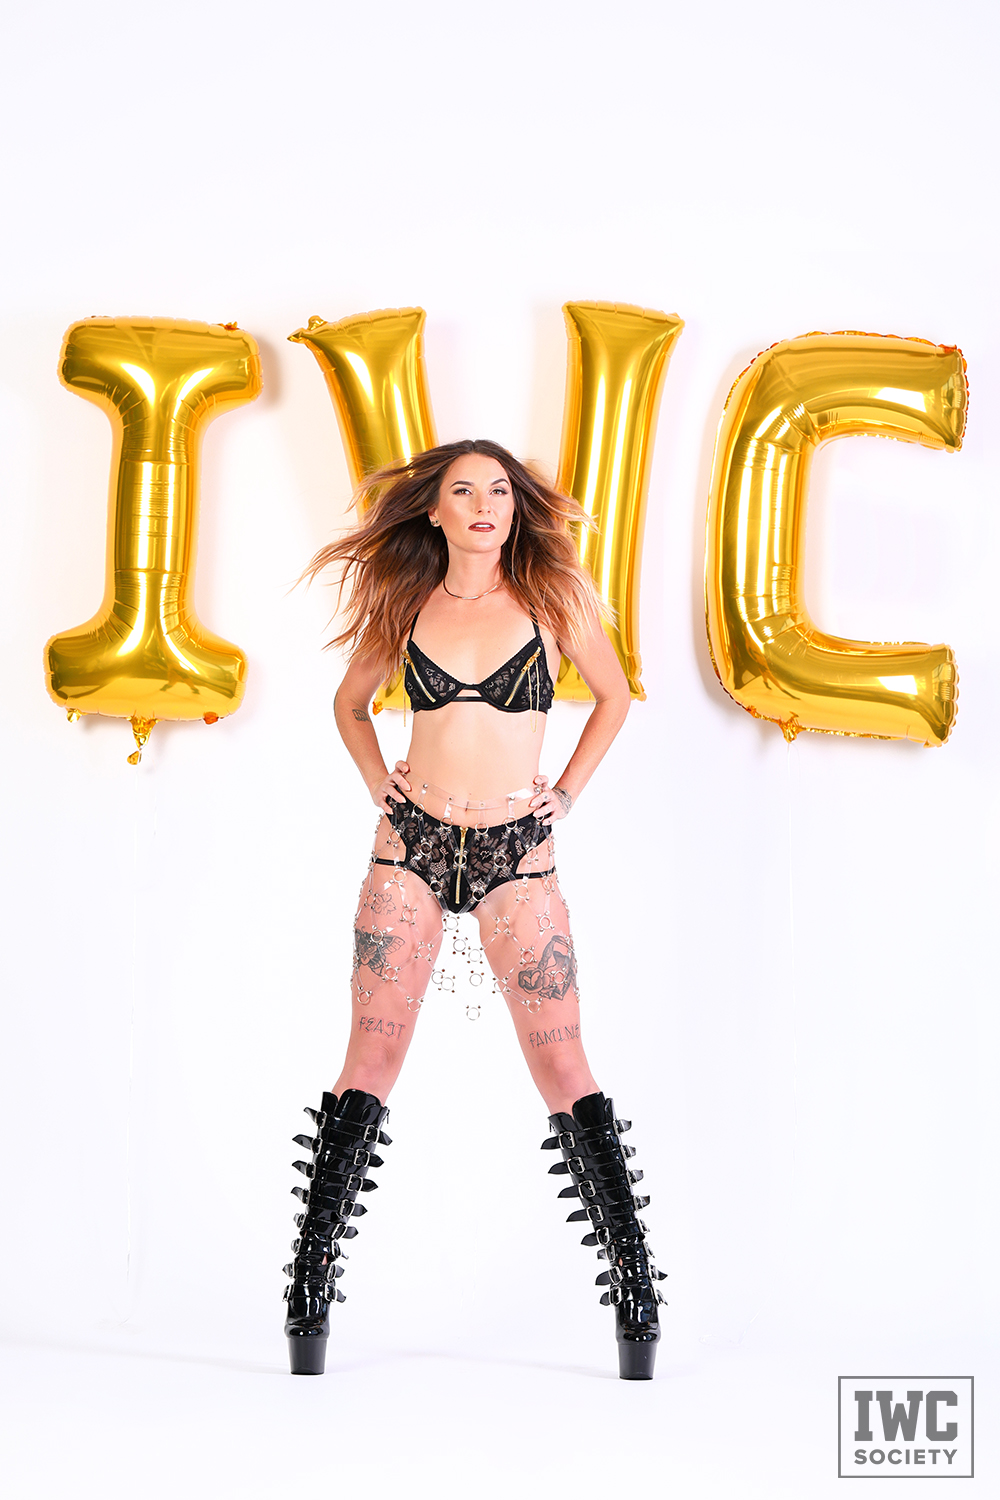 Financial dominatrix Goddess Emerald posing in black lingerie and black boots in front of gold IWC letters for iWantClips